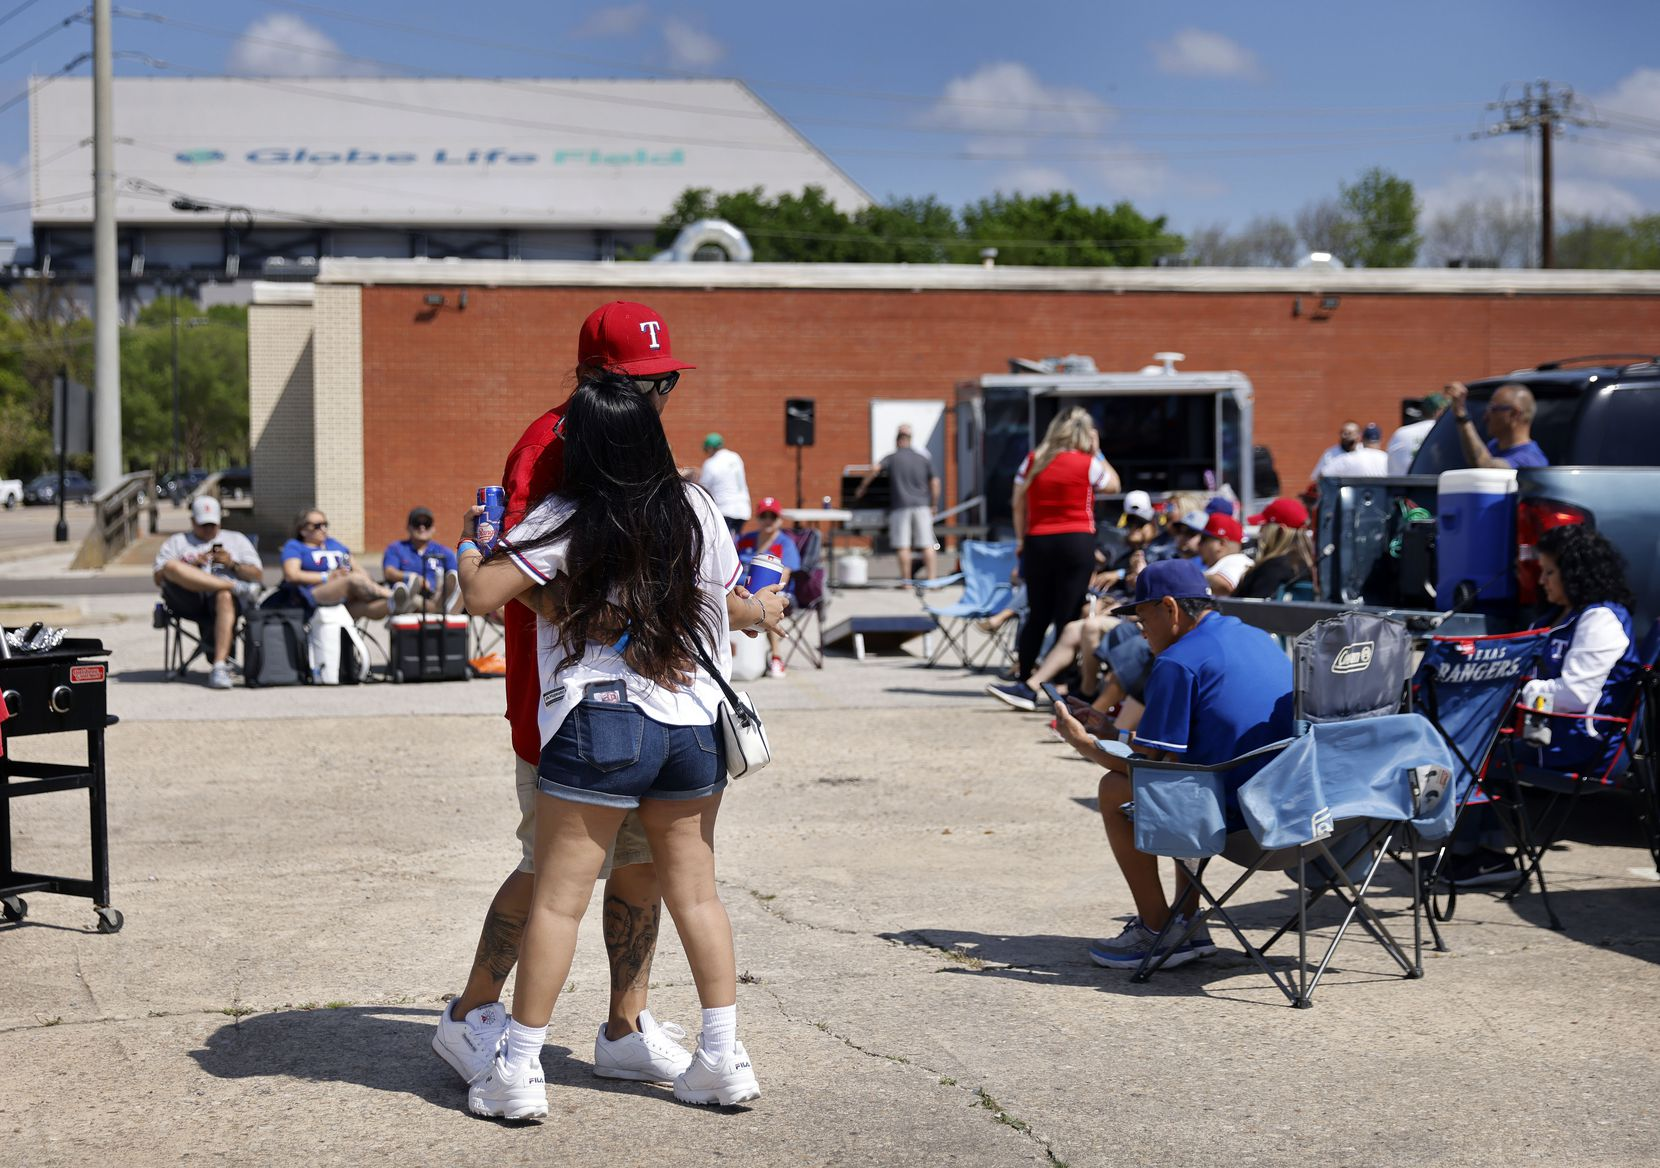 Texas Rangers fans Angela Zurita and her boyfriend Pedro Martinez danced to country music during an Opening Day tailgate party on private property near Globe Life Field in Arlington, Monday, April 5, 2021. The Rangers are facing the Toronto Blue Jays in the home opener. (Tom Fox/The Dallas Morning News)